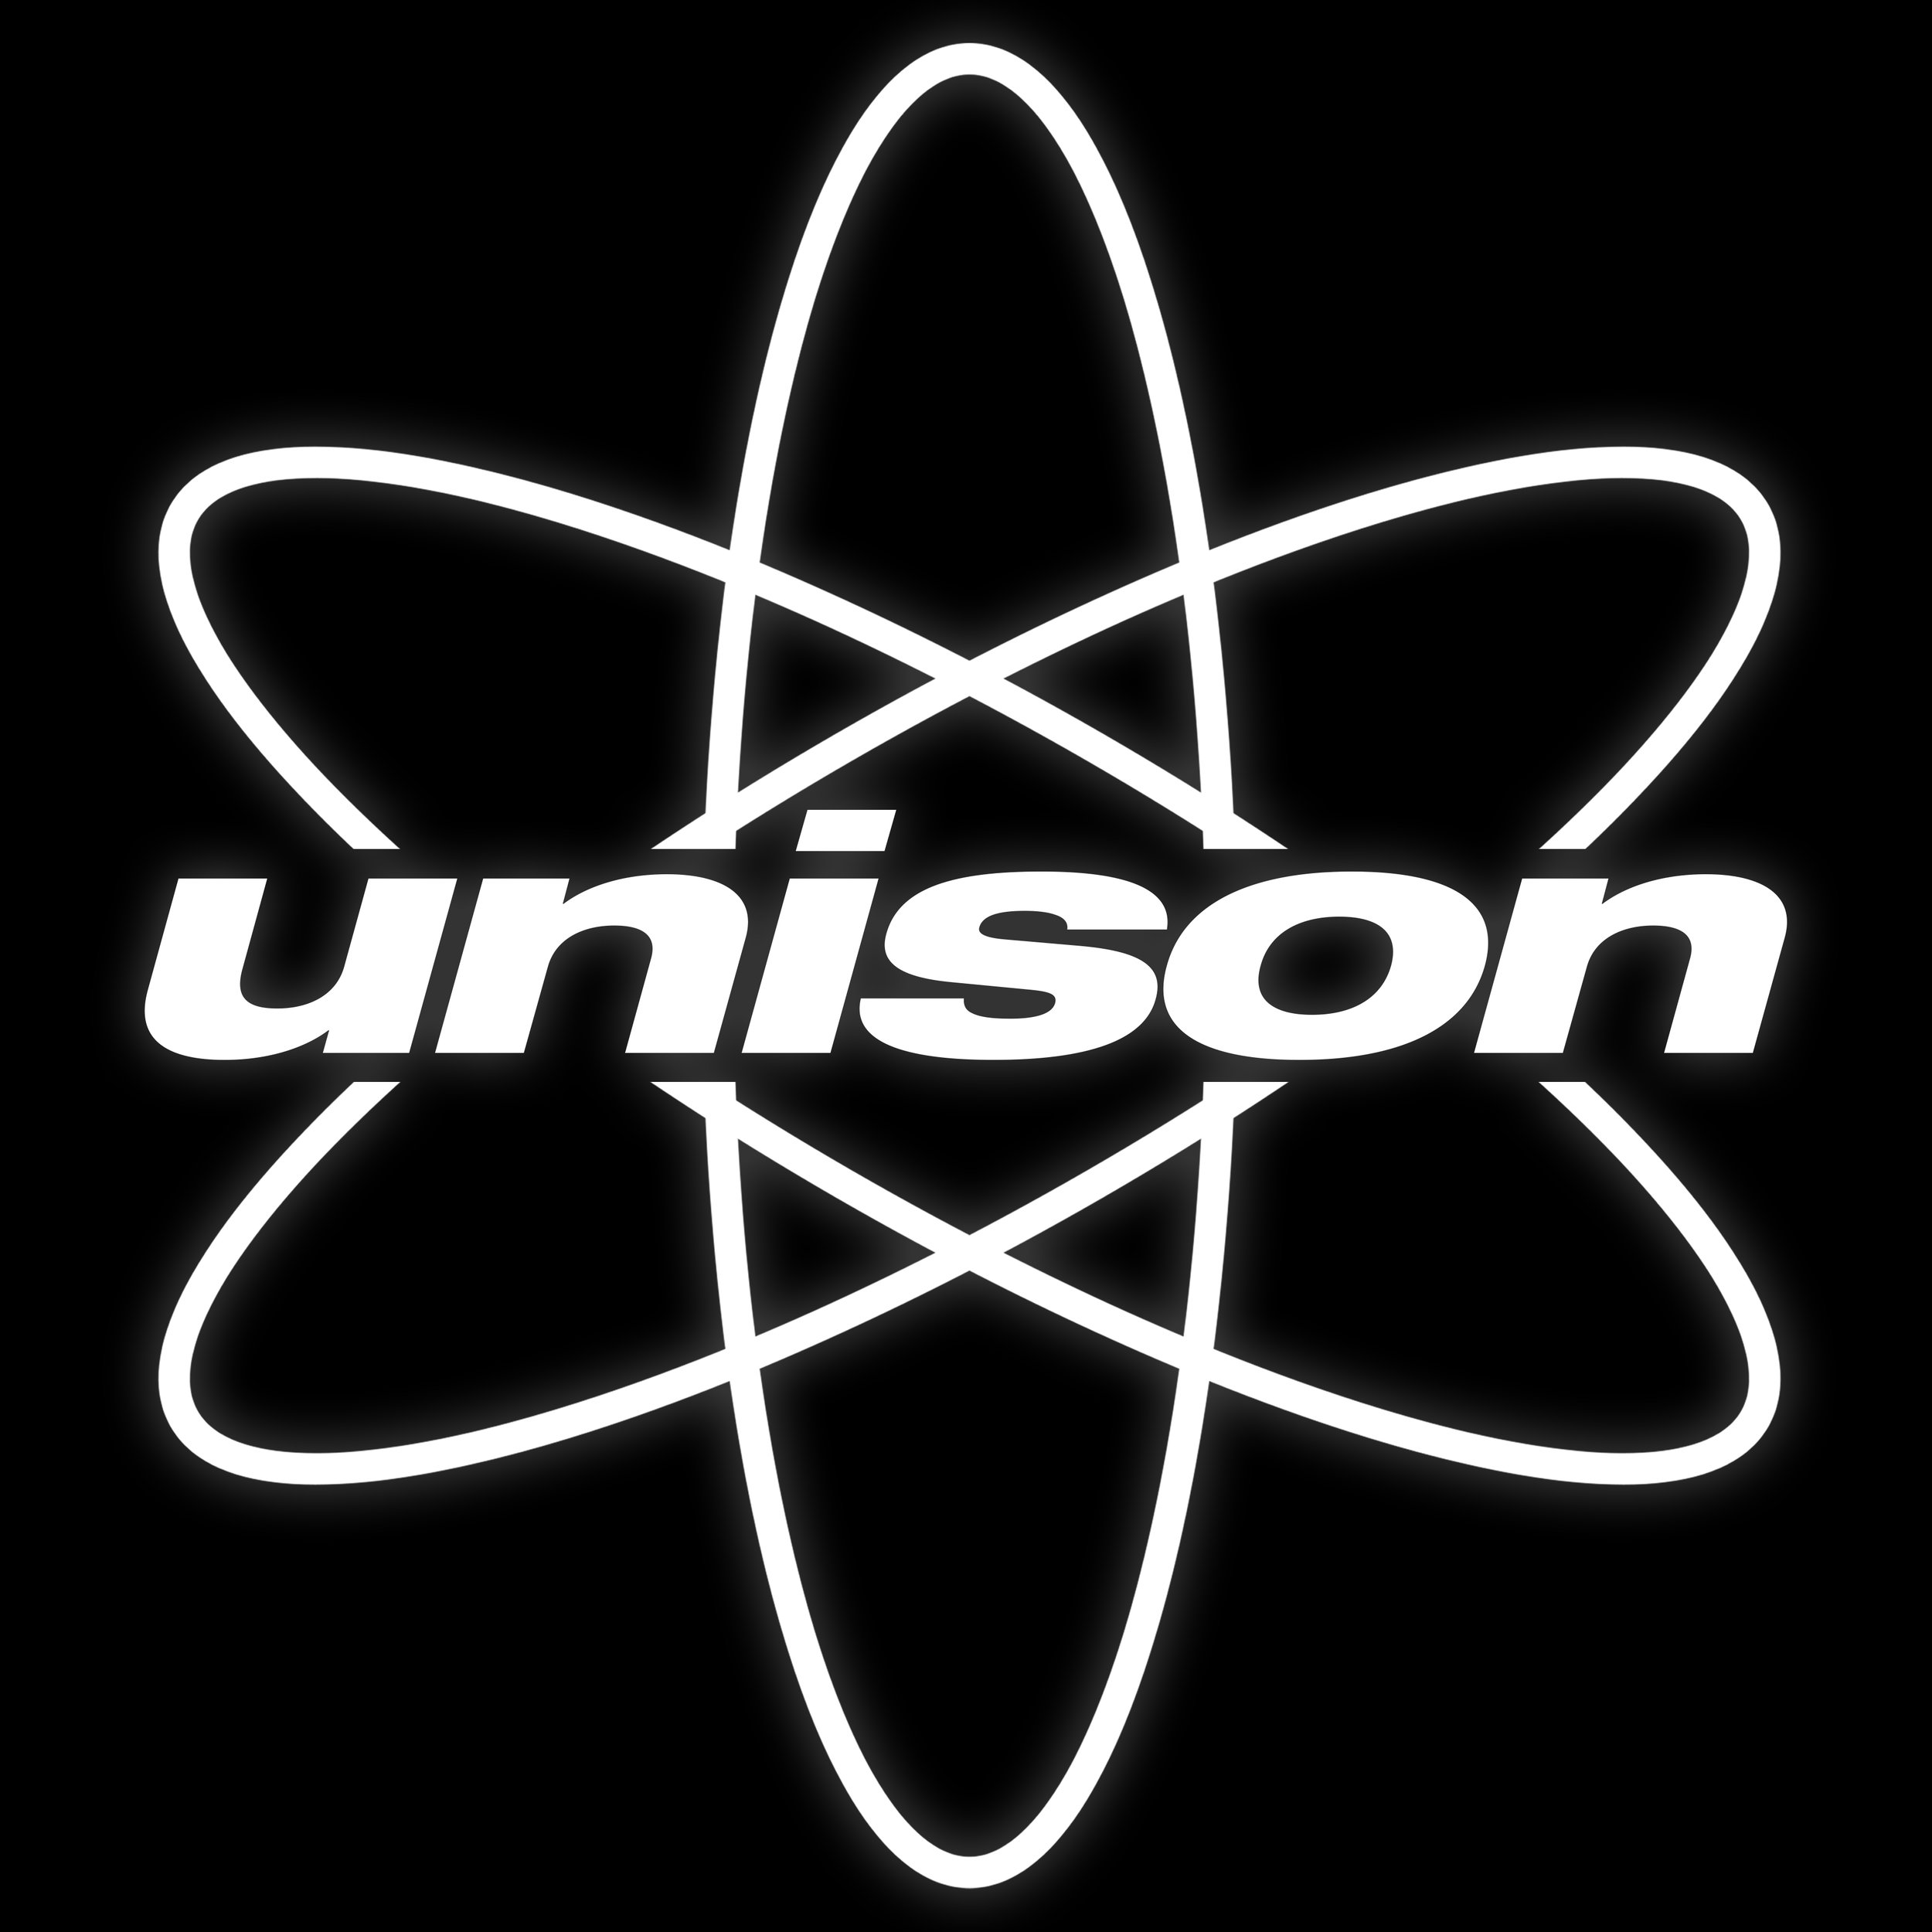 unison logo glowing.jpg